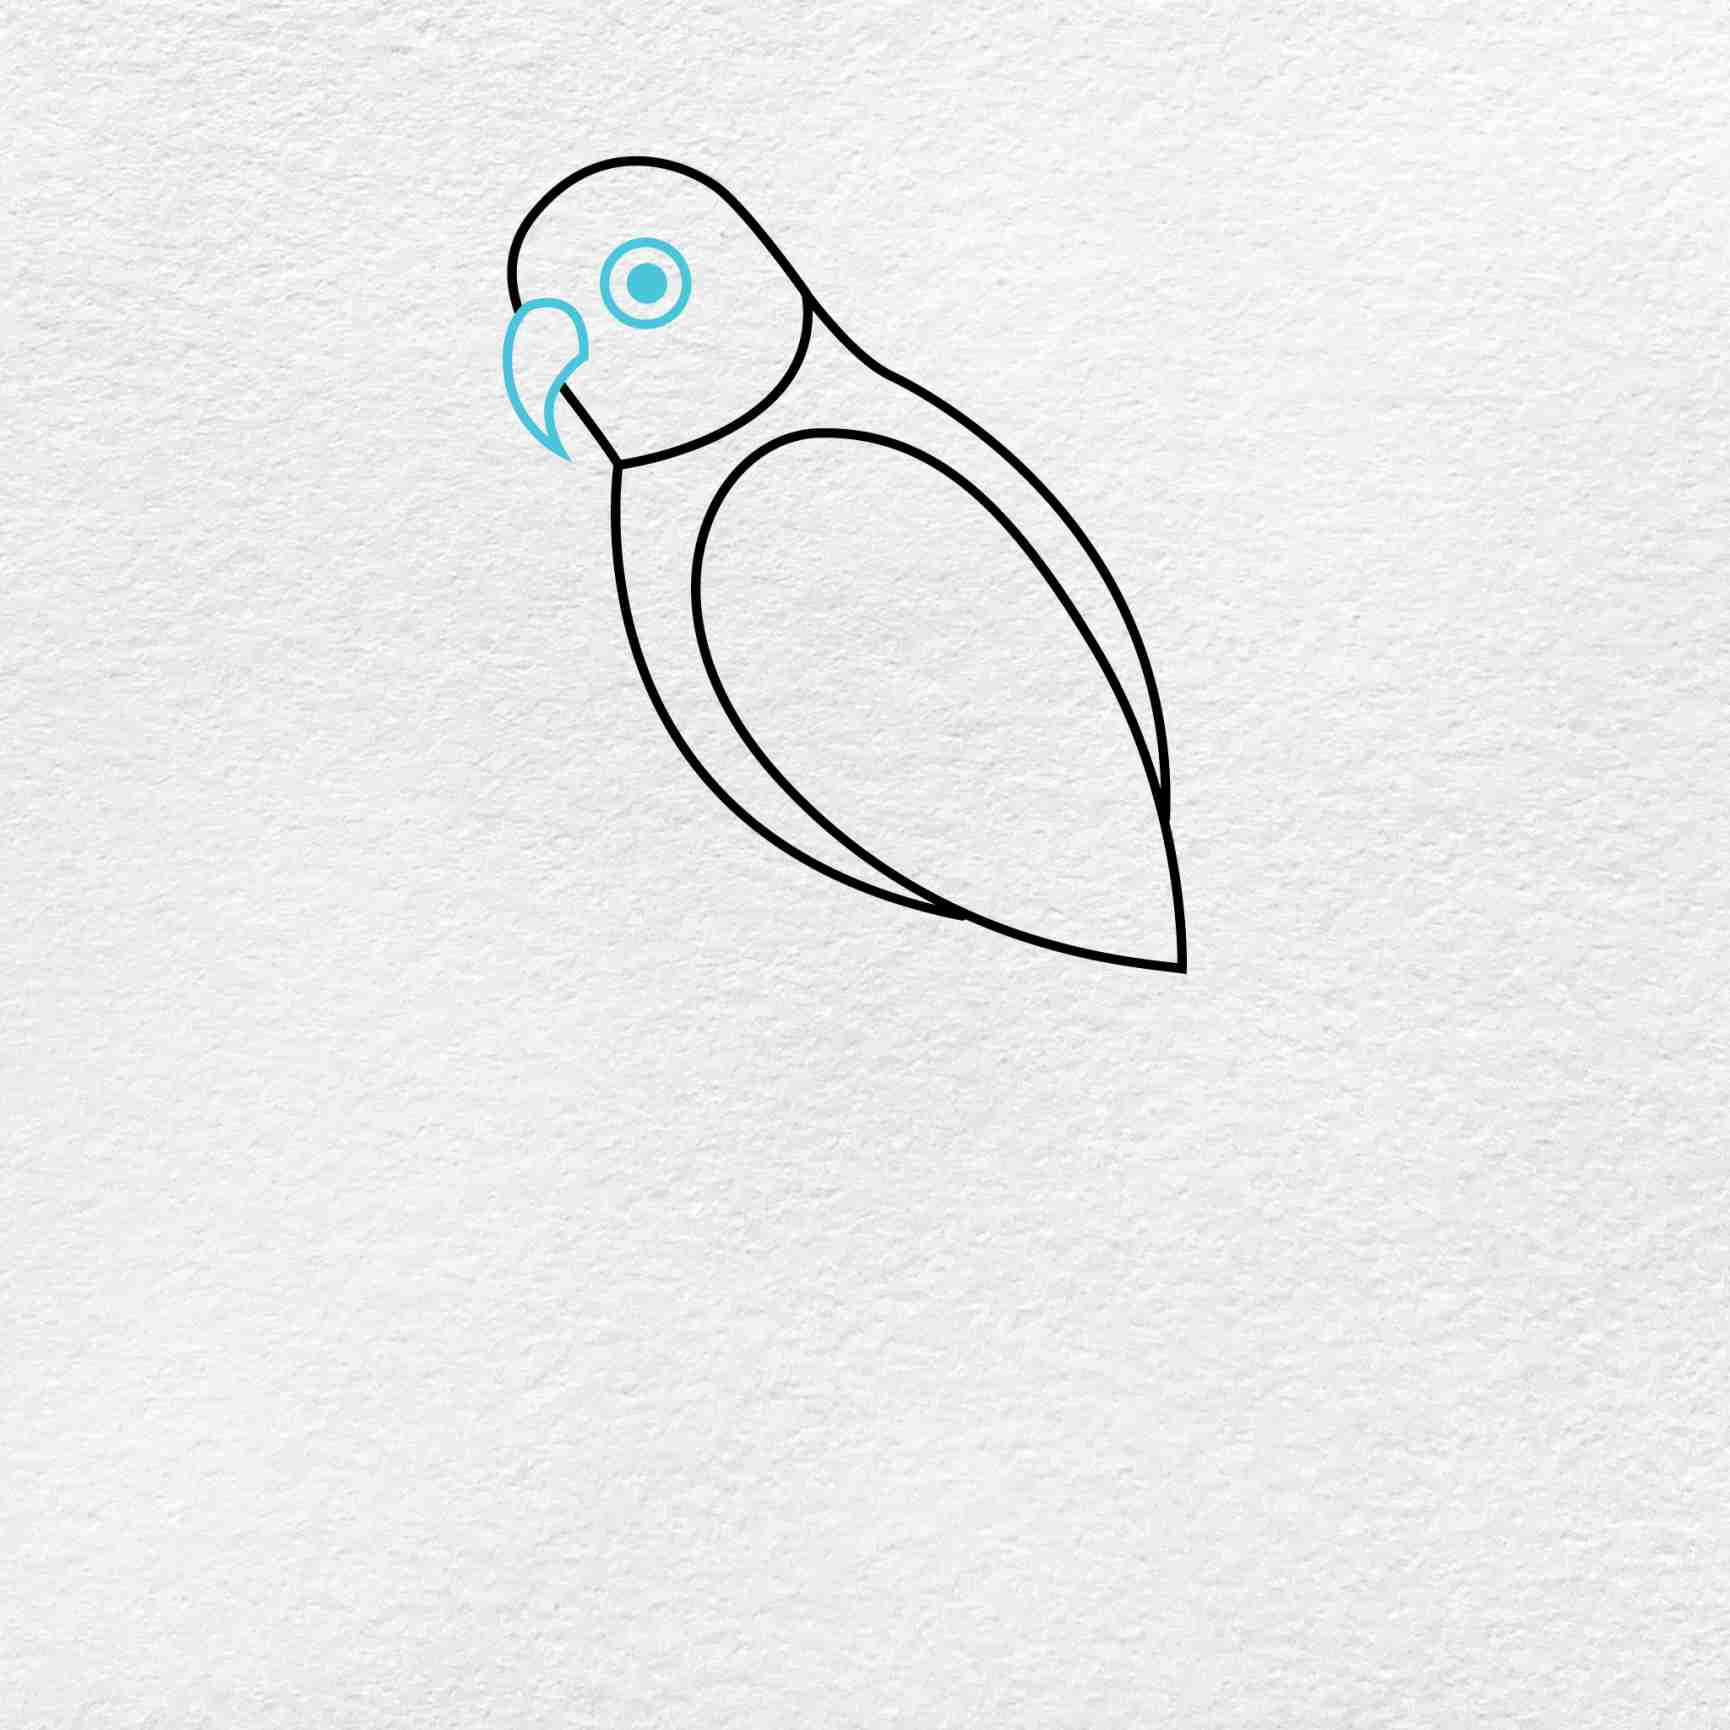 How To Draw A Parrot: Step 3